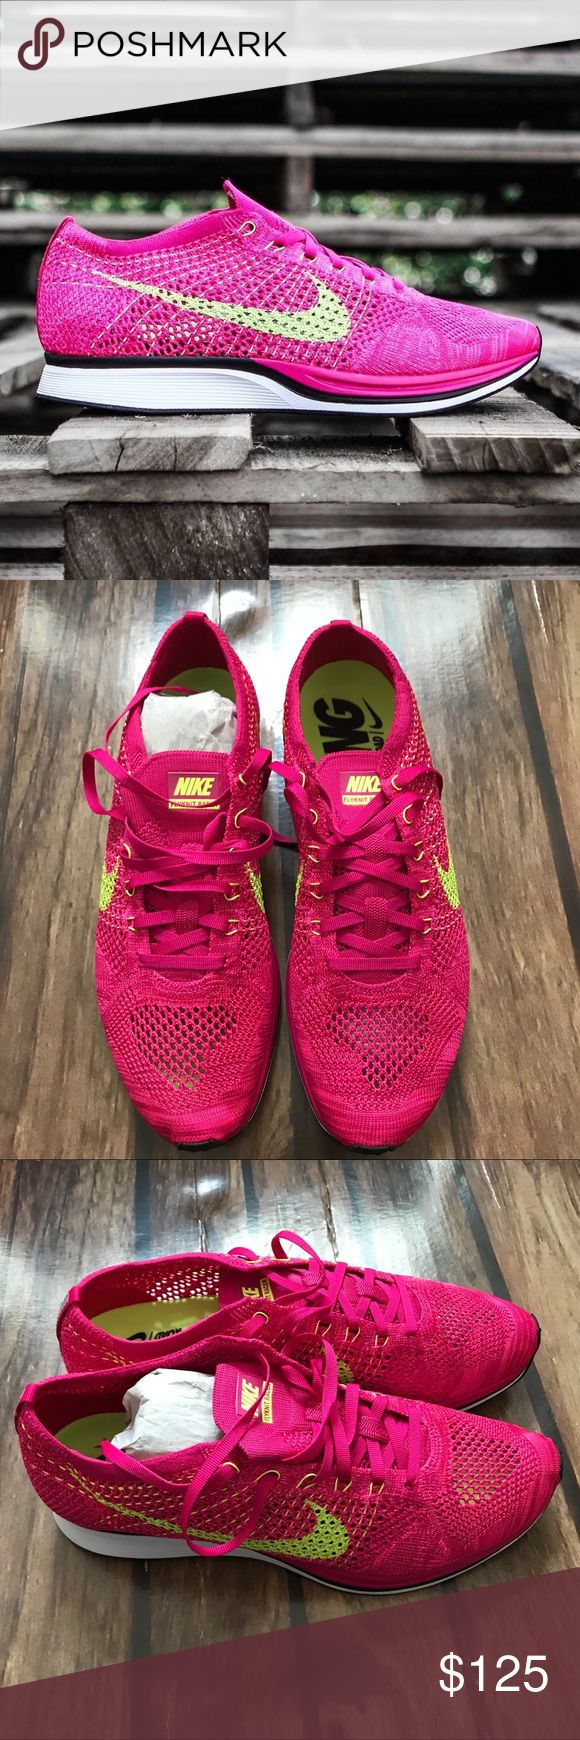 Nike Flyknit Racer Shoes Fire Berry / Volt Great training shoe male size 10.5 female 12, color way fire berry & volt Nike Shoes Sneakers